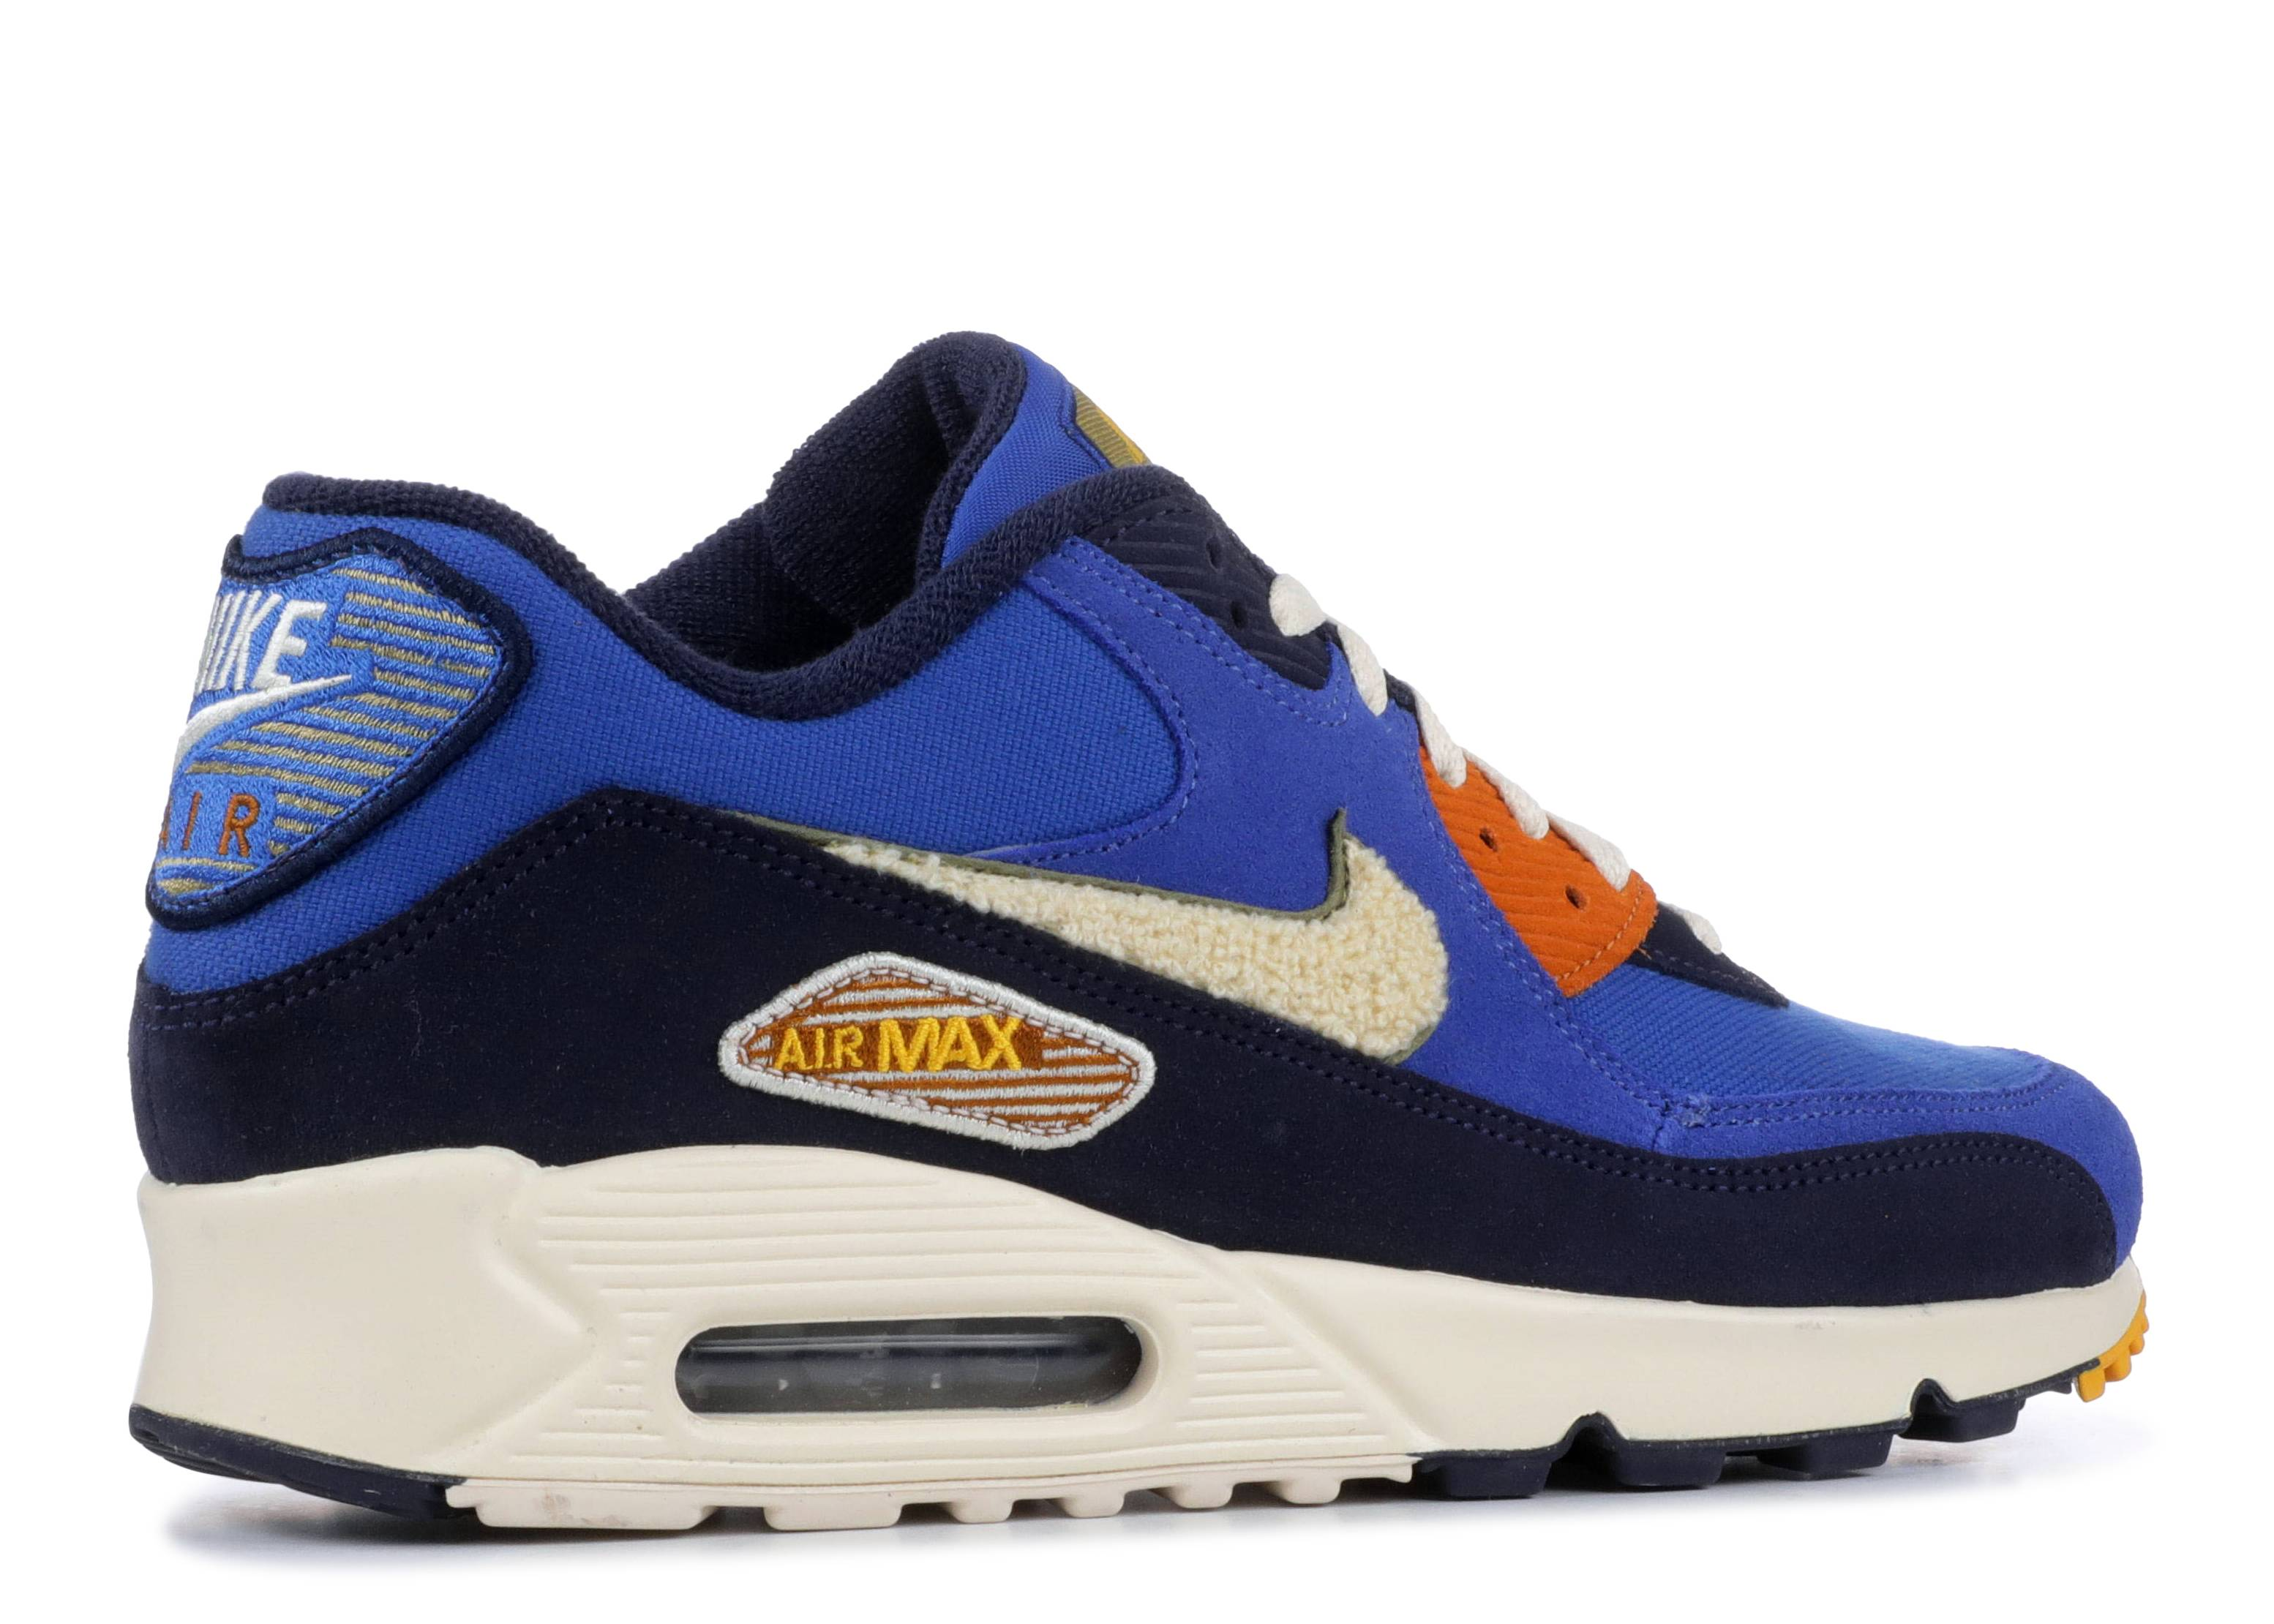 Air Max 90 Premium SE Game Royal & Light Cream